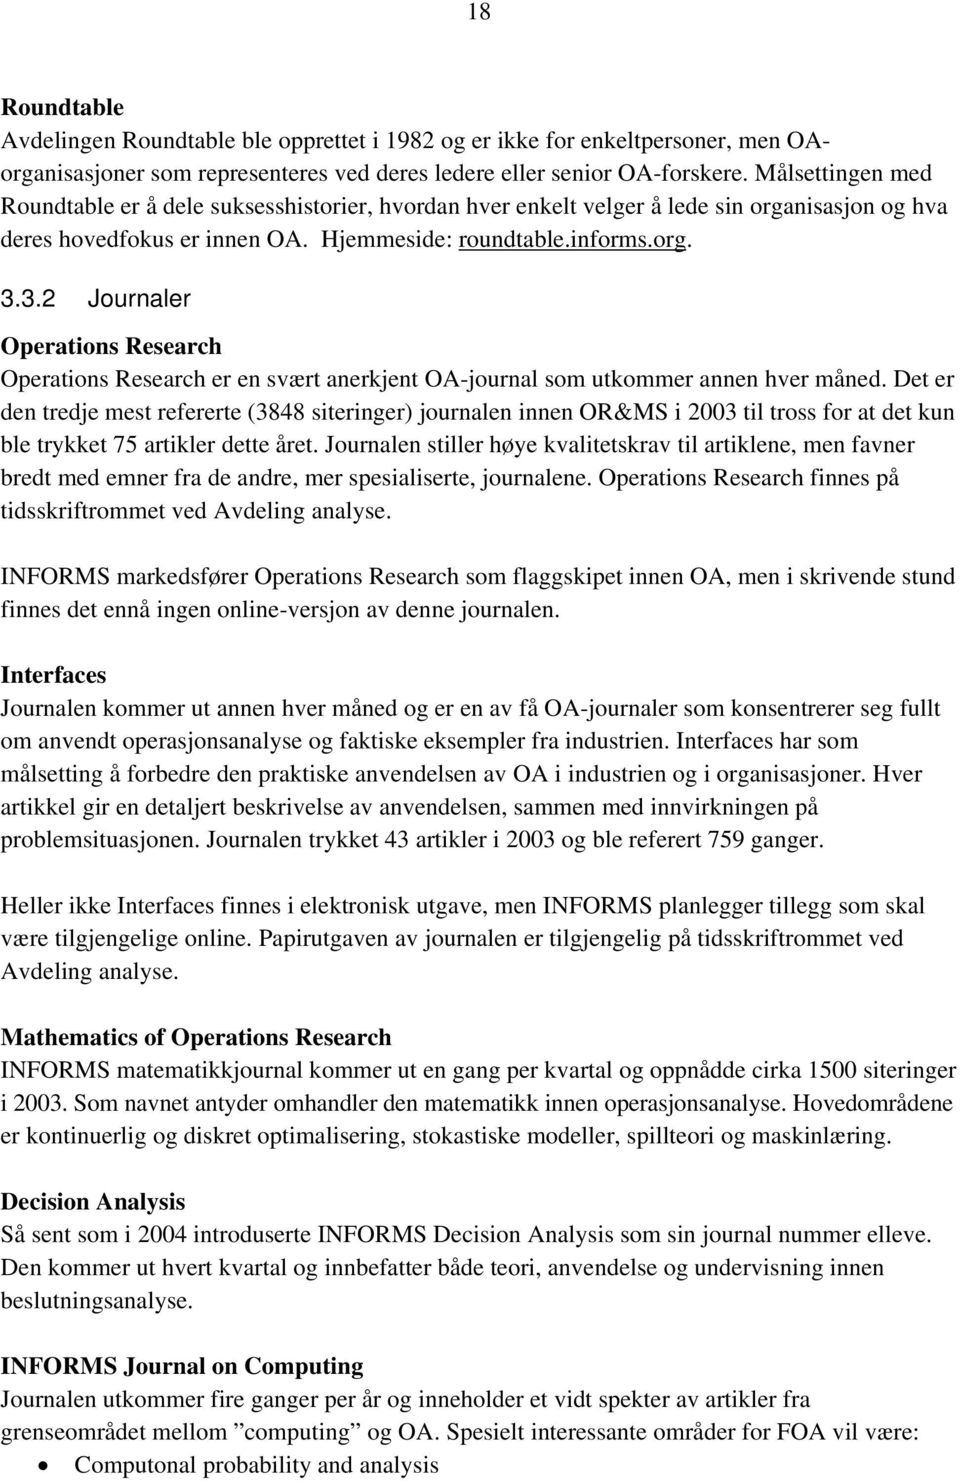 3.2 Journaler Operations Research Operations Research er en svært anerkjent OA-journal som utkommer annen hver måned.